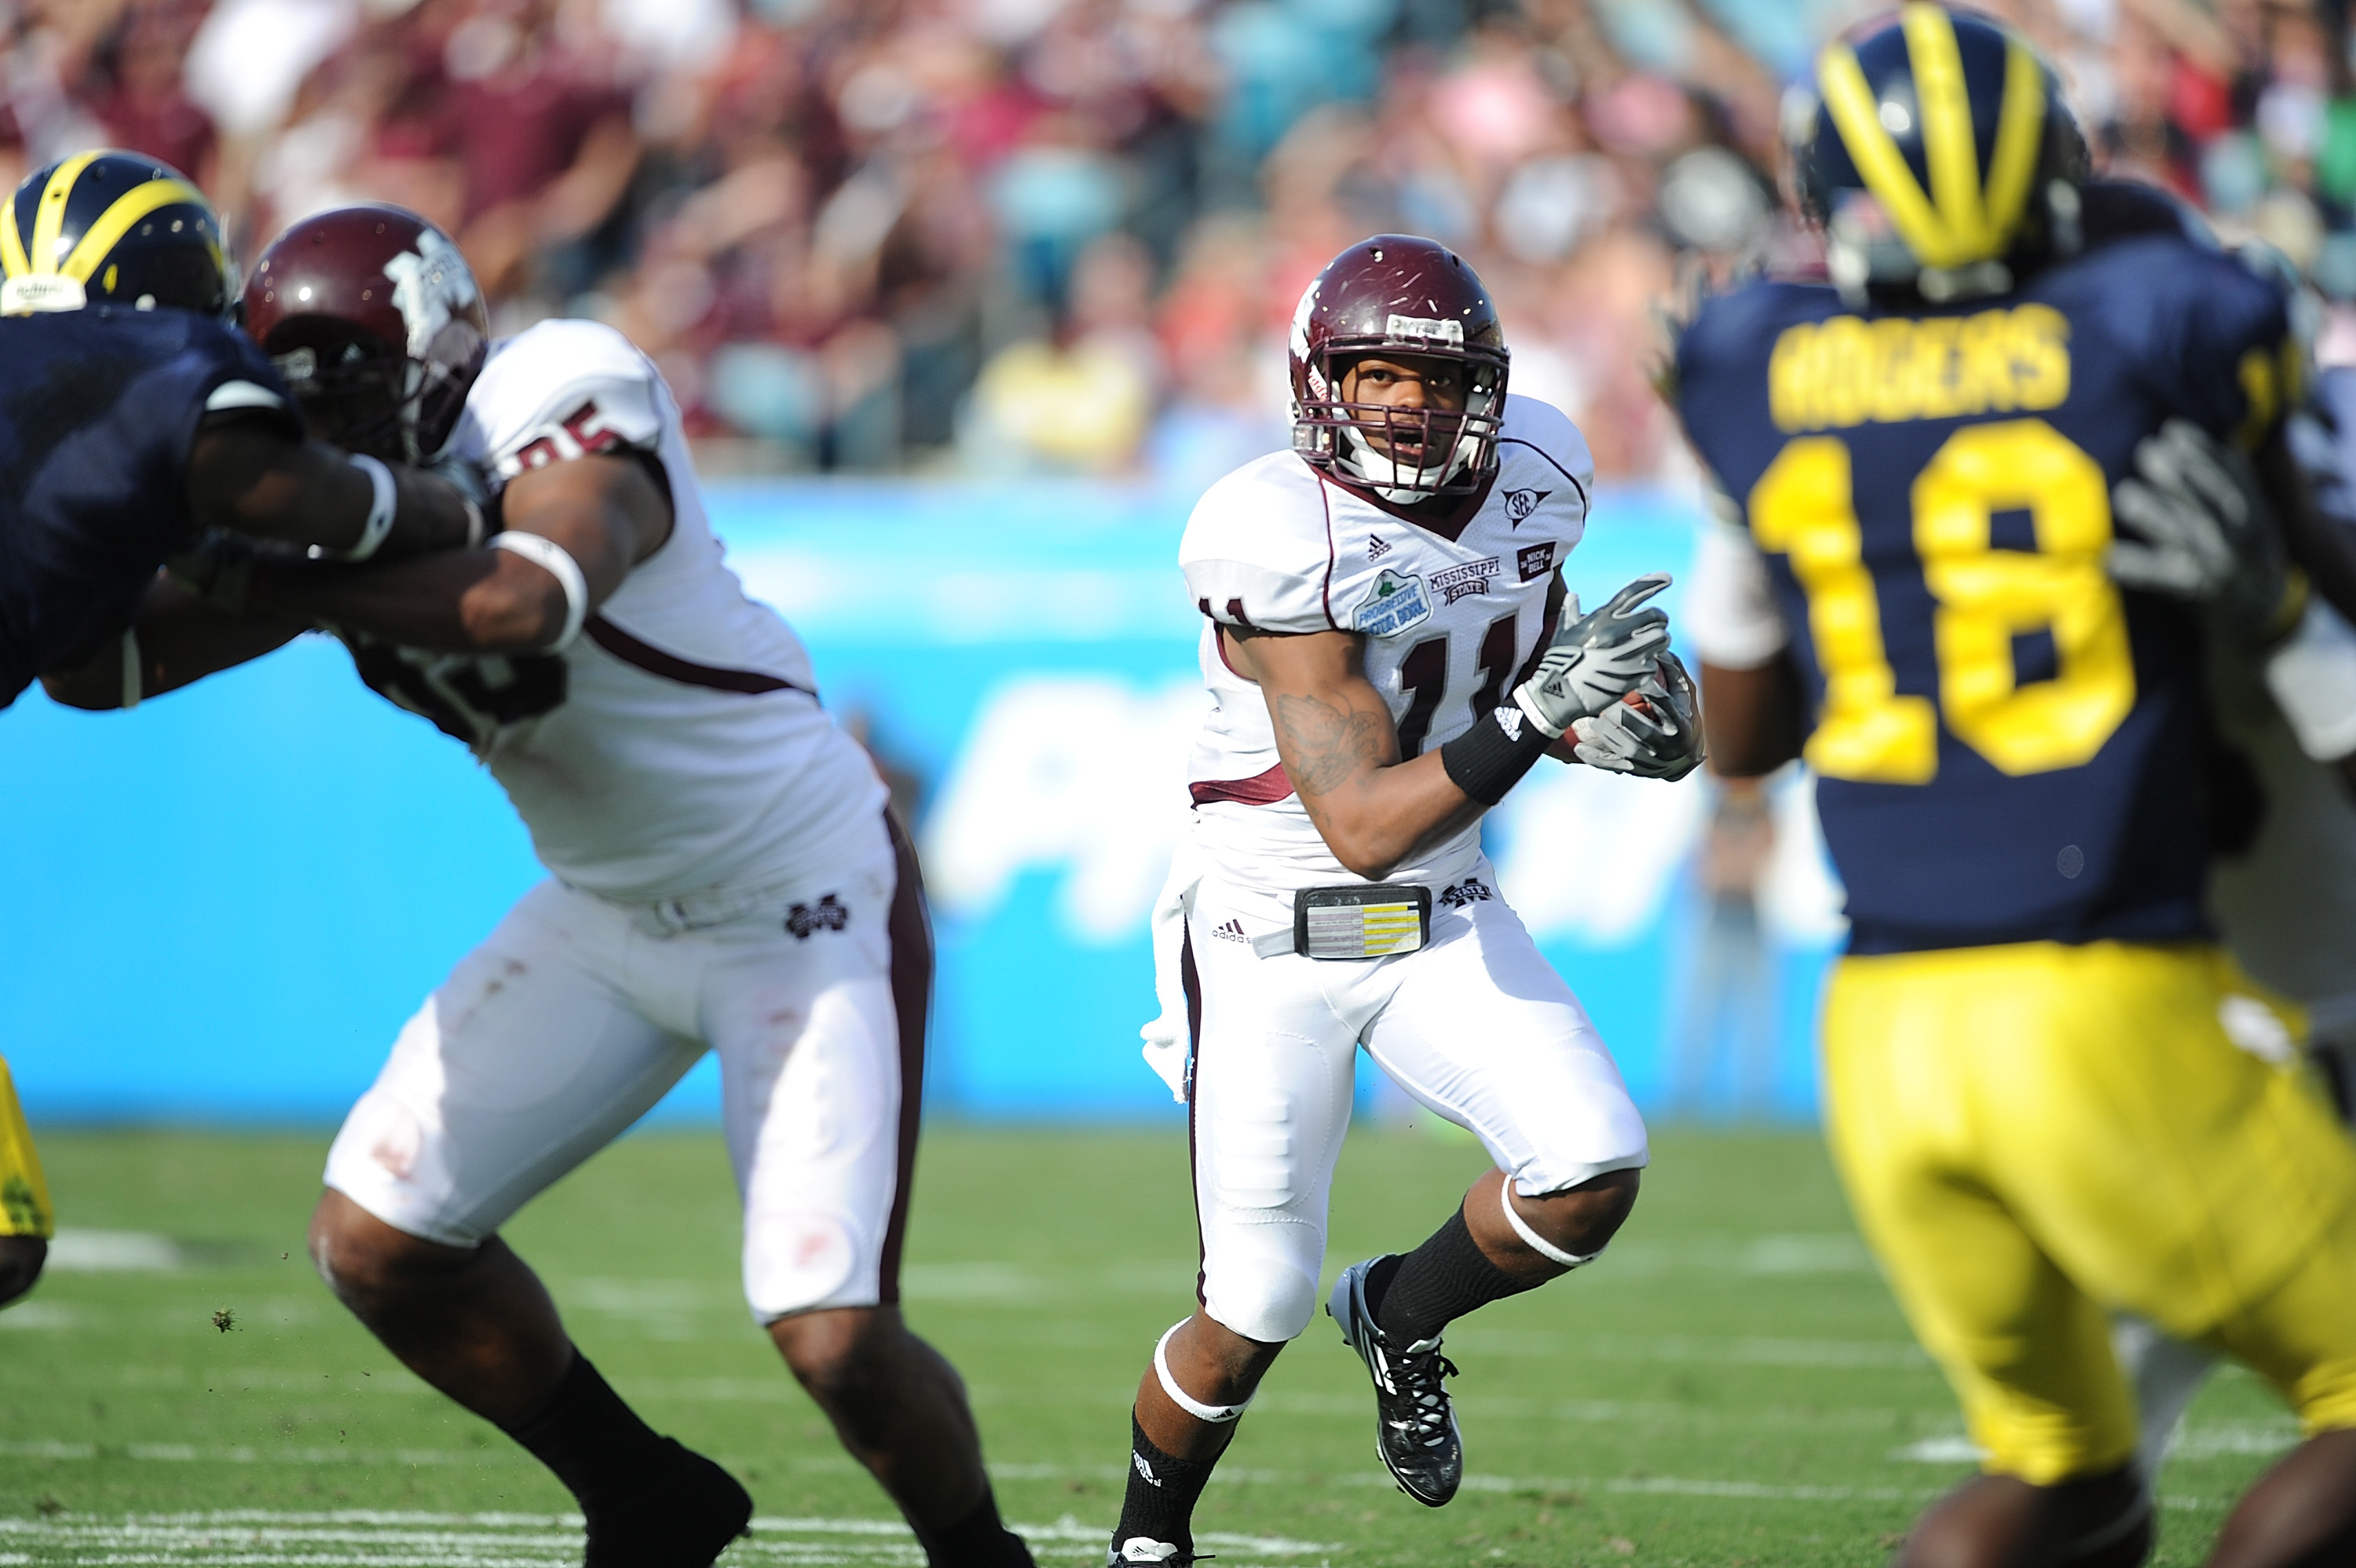 JACKSONVILLE, FL - JANUARY 01:  Ricco Sanders #11 of the Mississippi State Bulldogs rushes against the Michigan Wolverines during the Gator Bowl at EverBank Field on January 1, 2011 in Jacksonville, Florida  (Photo by Rick Dole/Getty Images)